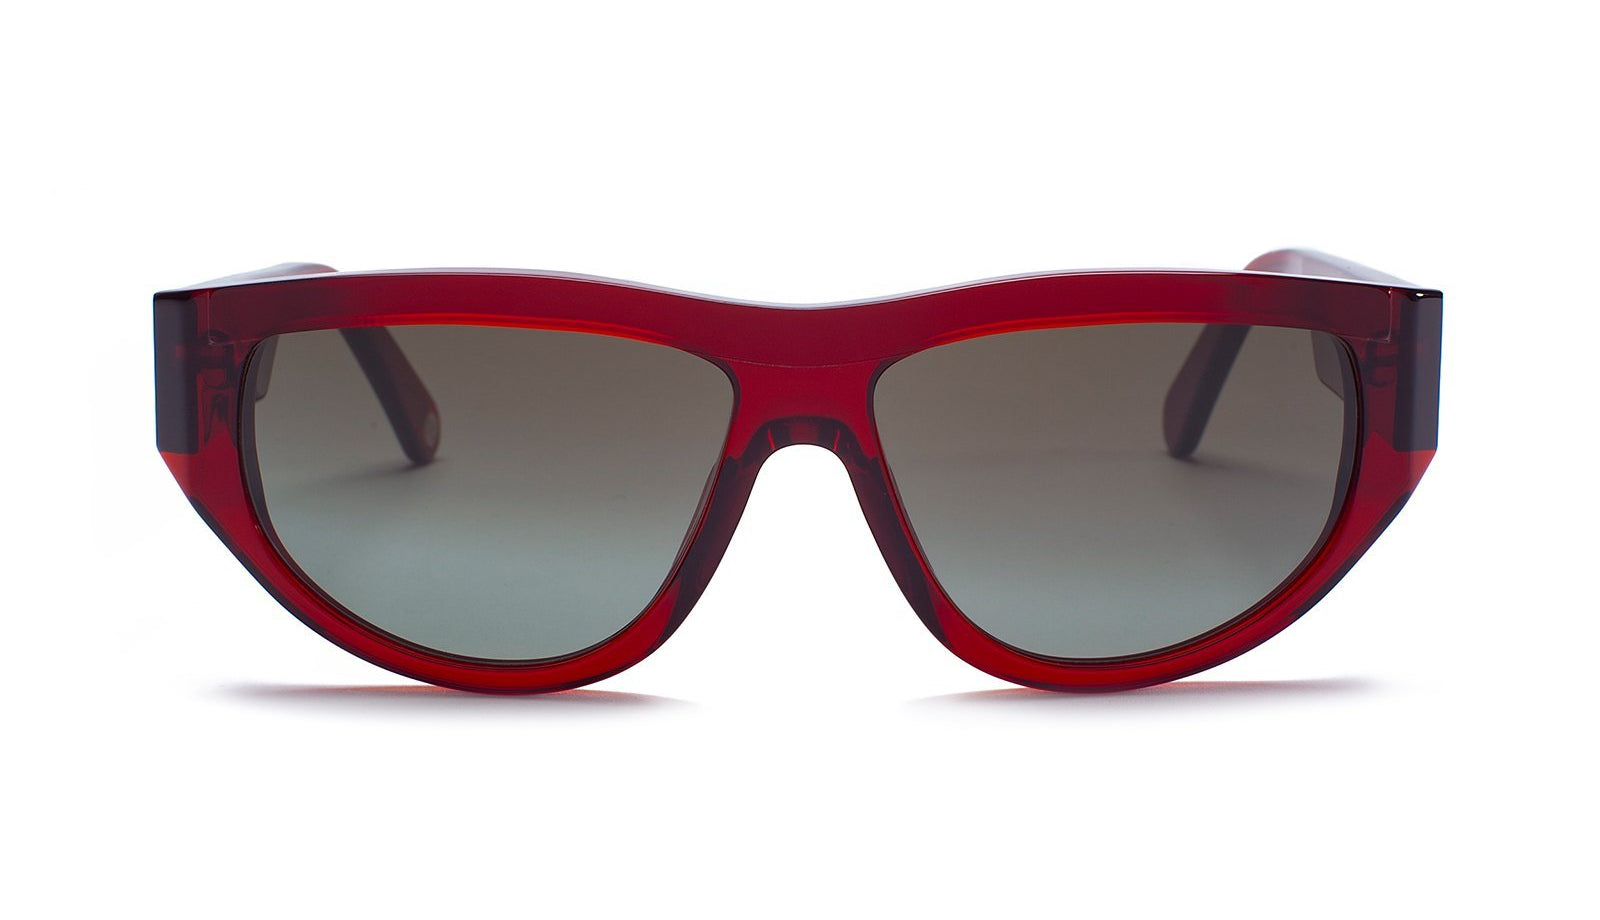 Ahlem Eyewear Bel Air Burgundy Sunglasses